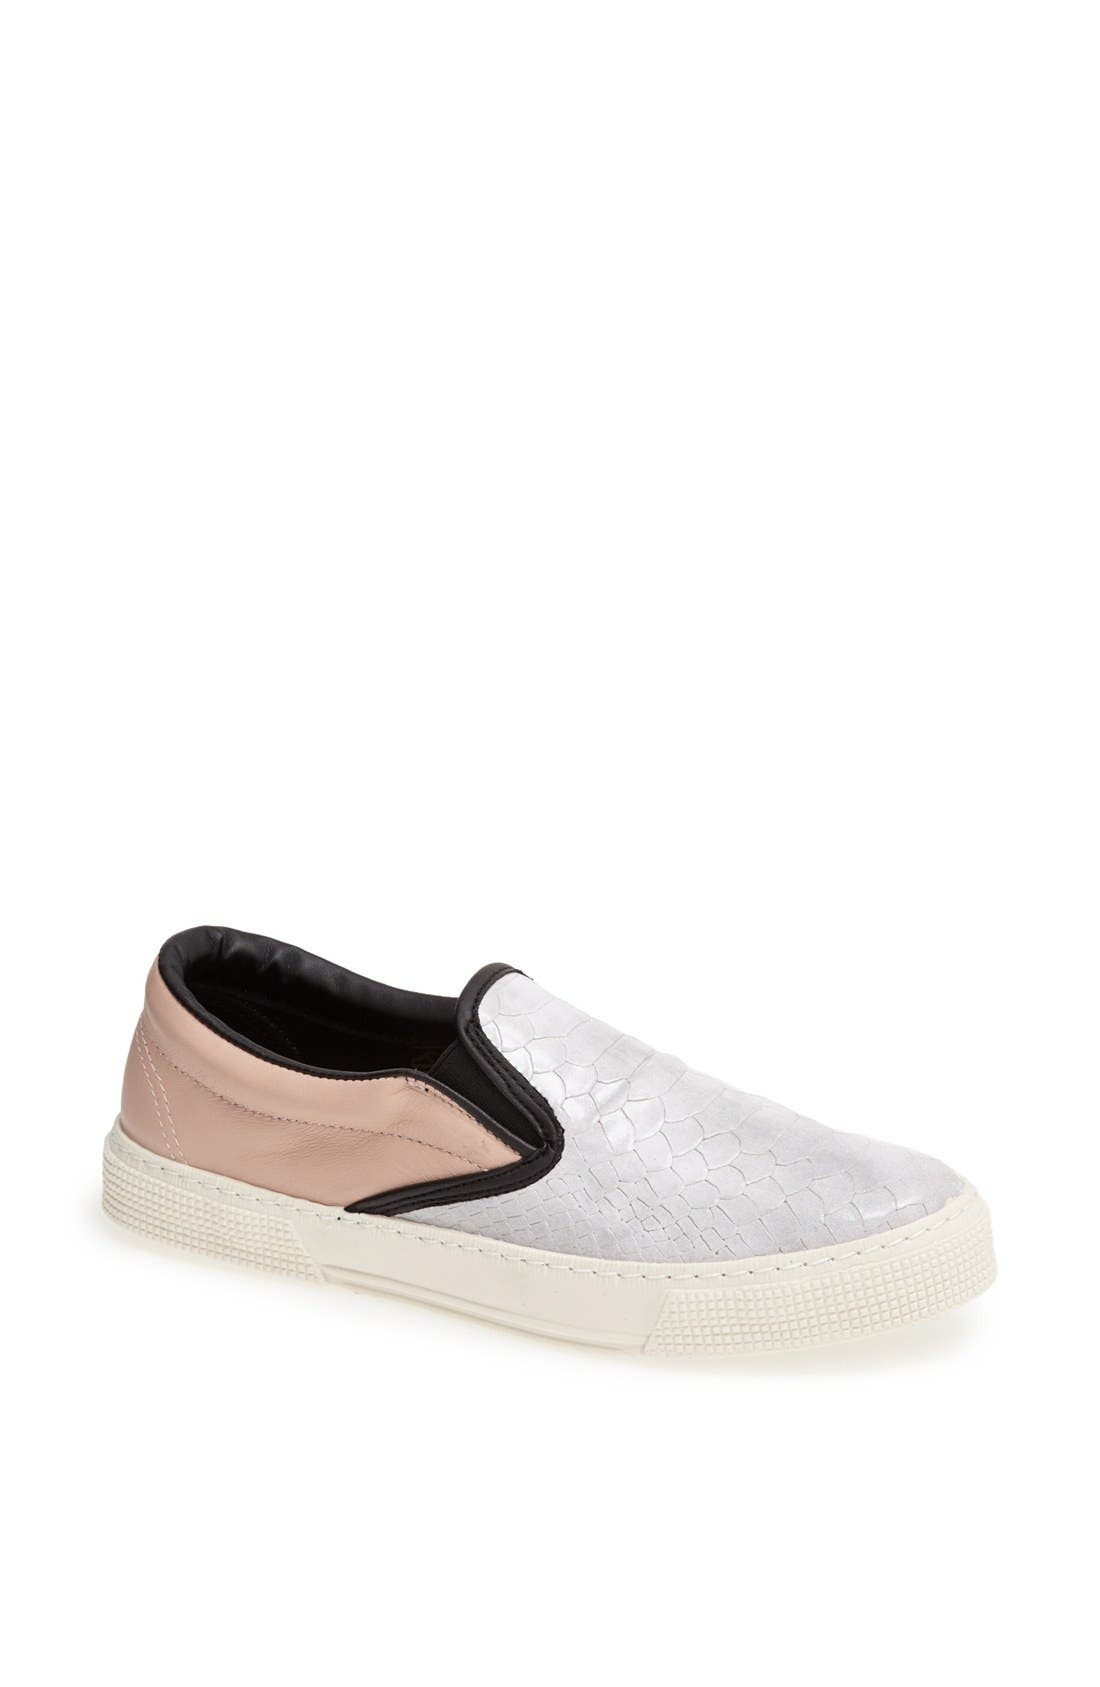 Slip-On Sneaker,                             Main thumbnail 1, color,                             050